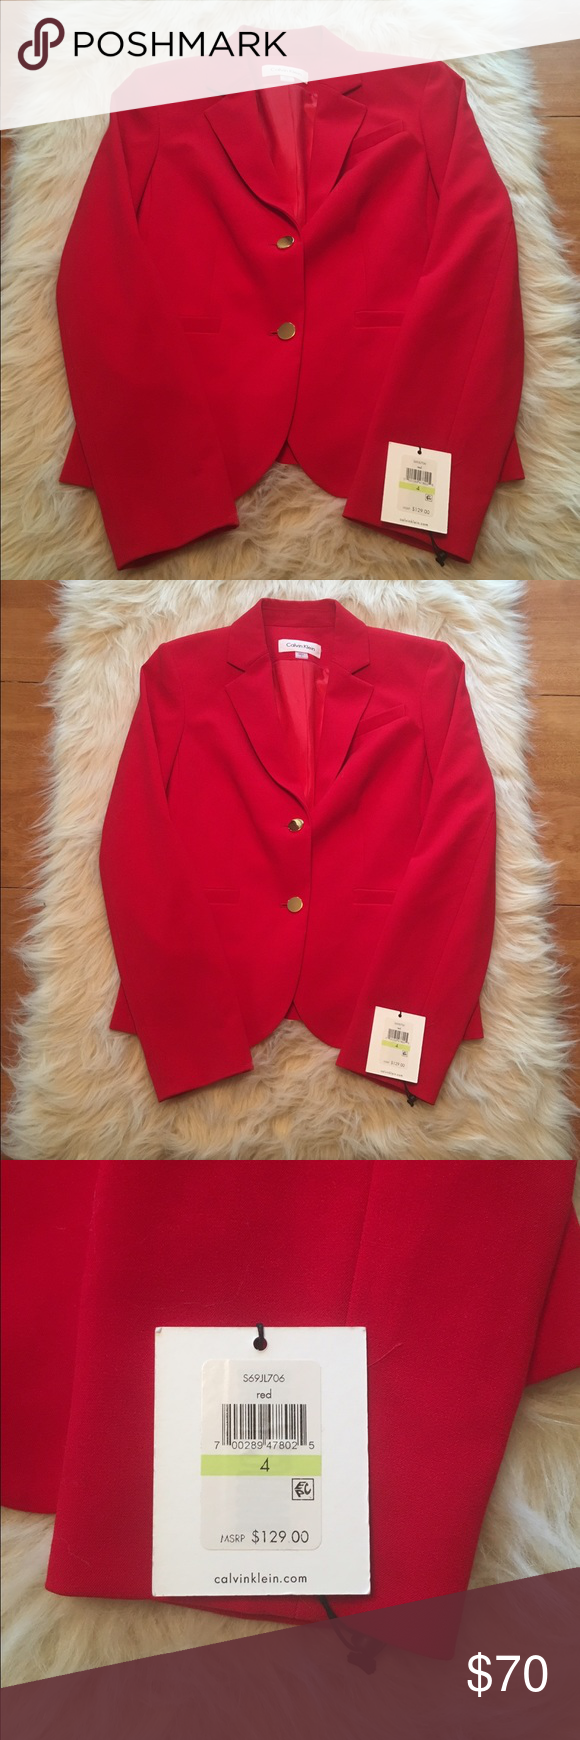 Stunning Calvin Klein suit jacket This GORGEOUS suit top is brand new with tags! The buttons are large and gold. Perfect for any time of the year. Take your work game up a notch with this gorgeous piece. Calvin Klein Jackets & Coats Blazers